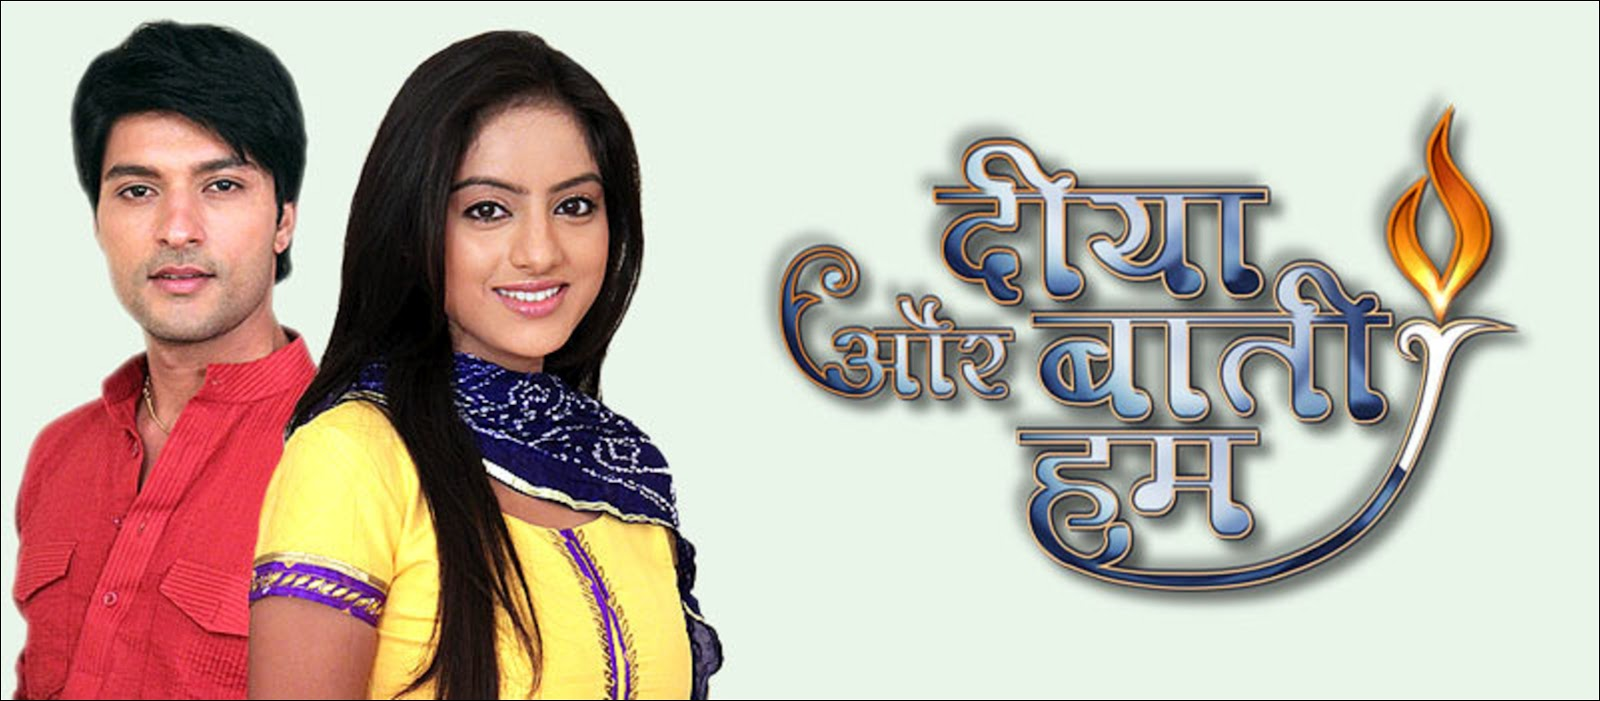 Diya aur baati hum serial title song